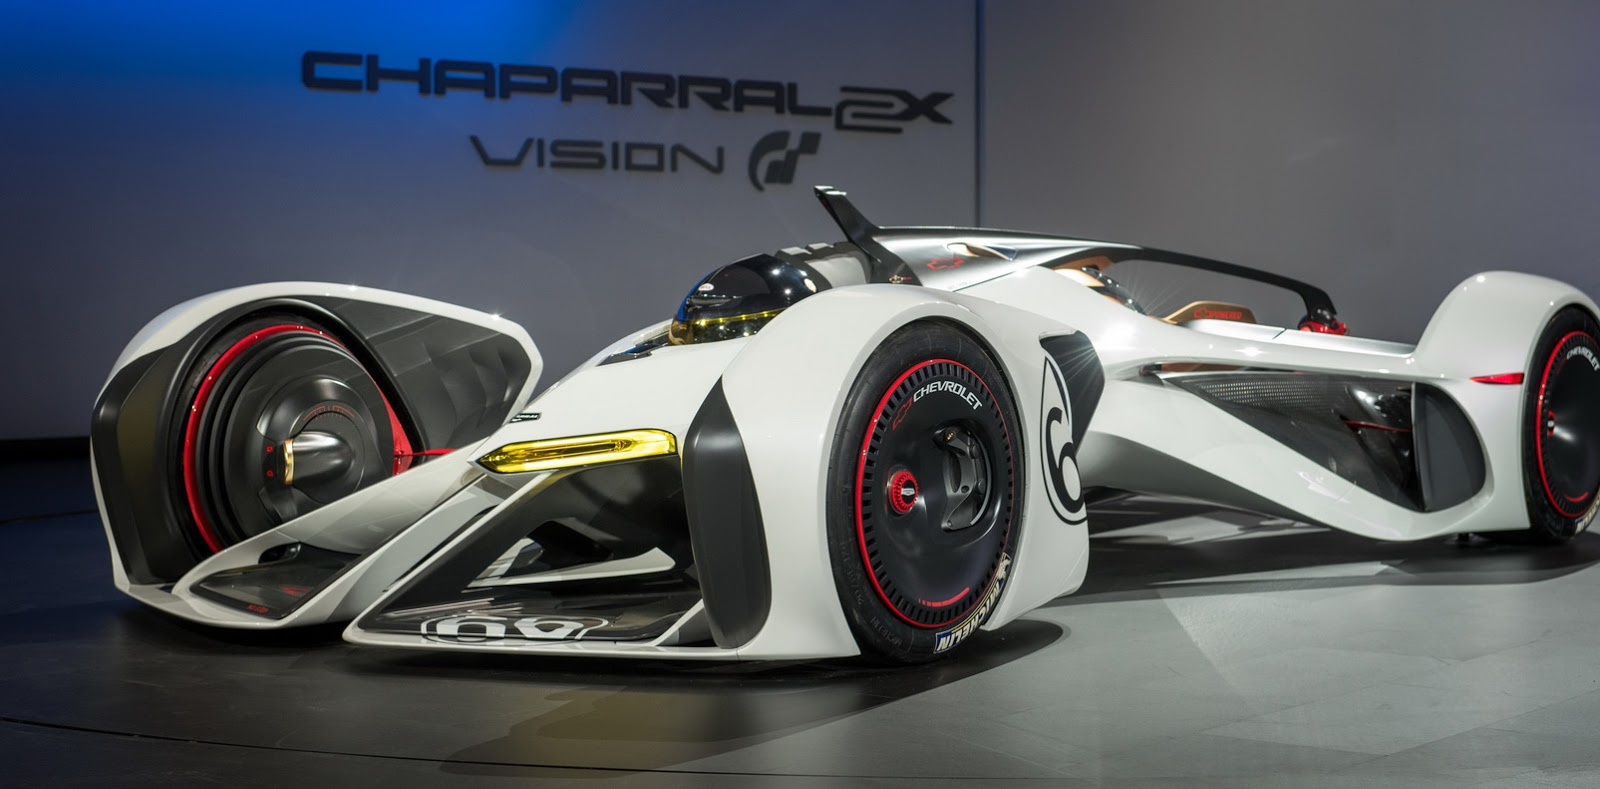 Chevy's Chaparral 2X VGT Is Real, In A Fictional Way…[w